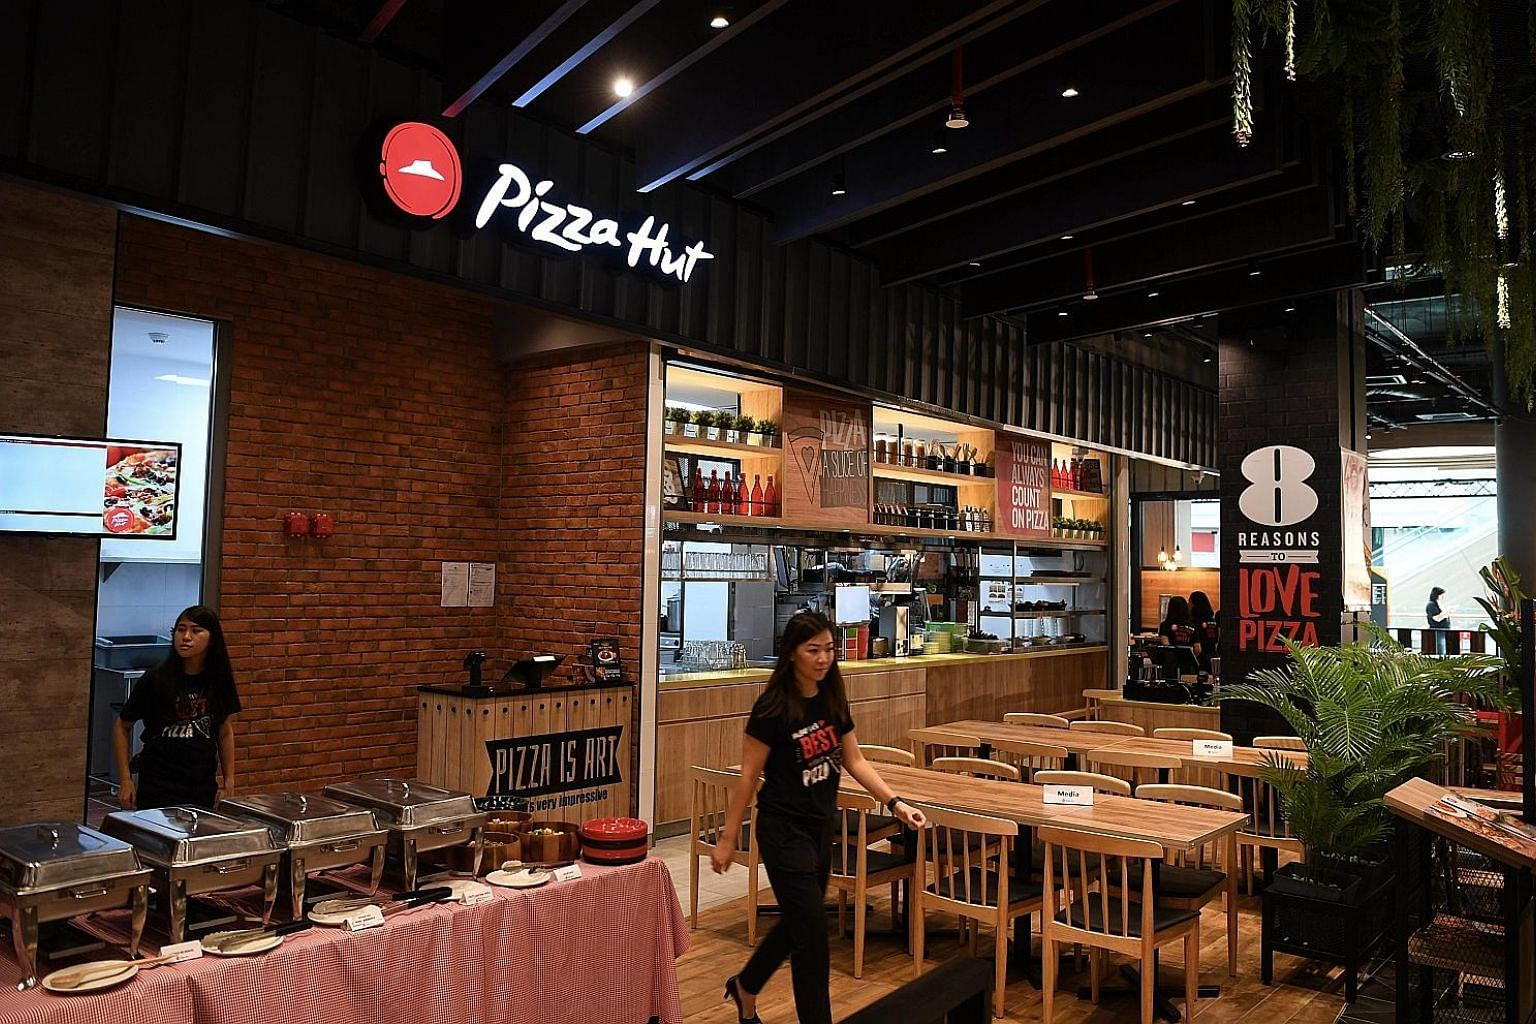 QSR Brands operates more than 470 Pizza Hut outlets in Malaysia and Singapore, as well as over 830 KFC restaurants in Malaysia, Singapore, Brunei and Cambodia. The company's backers have asked for non-binding offers to be submitted by the end of this